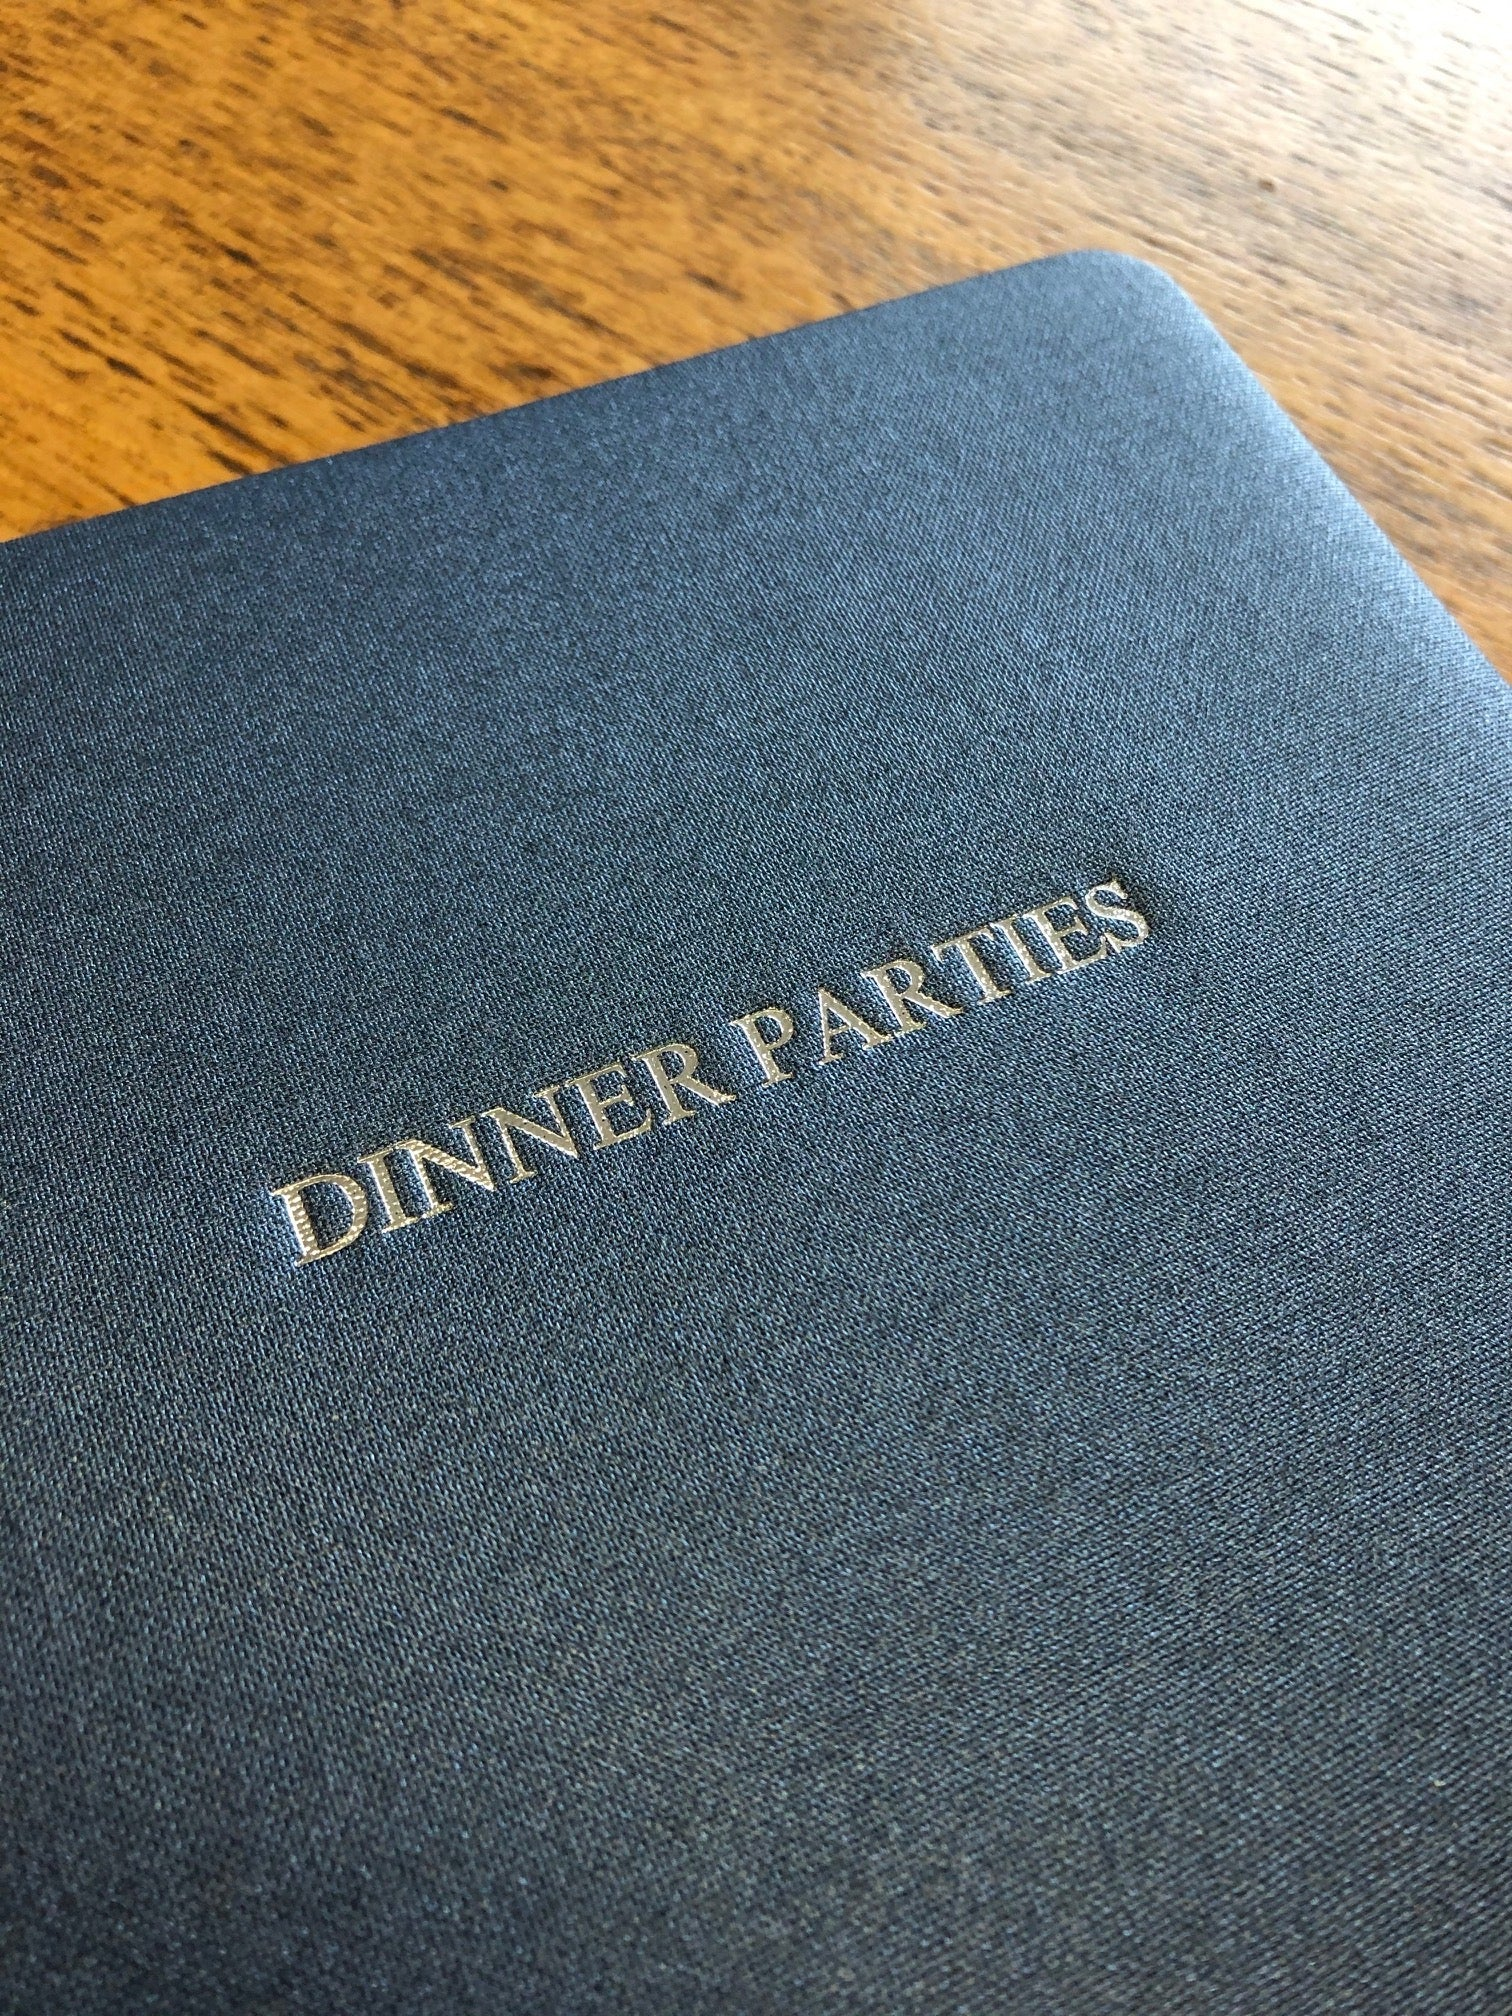 Text Image of Metallic Buckram Sapphire Dinner Party Book